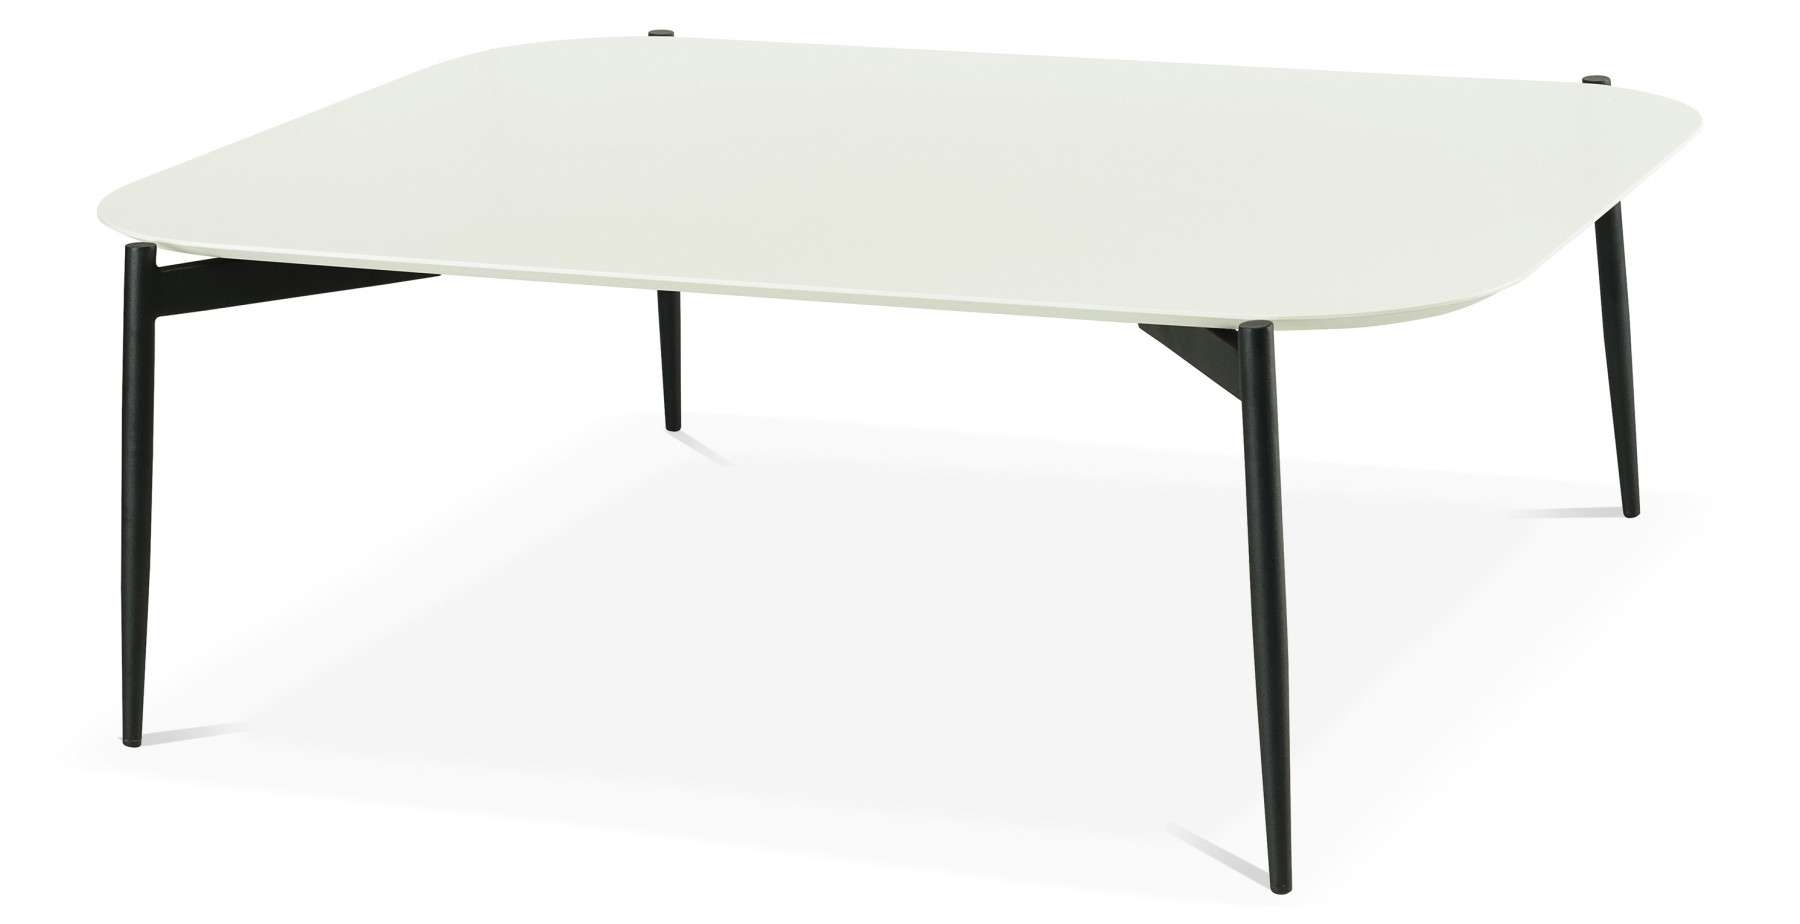 Most Recent High Coffee Tables Throughout Alec High Coffee Table, White Fern & Grey (View 10 of 20)